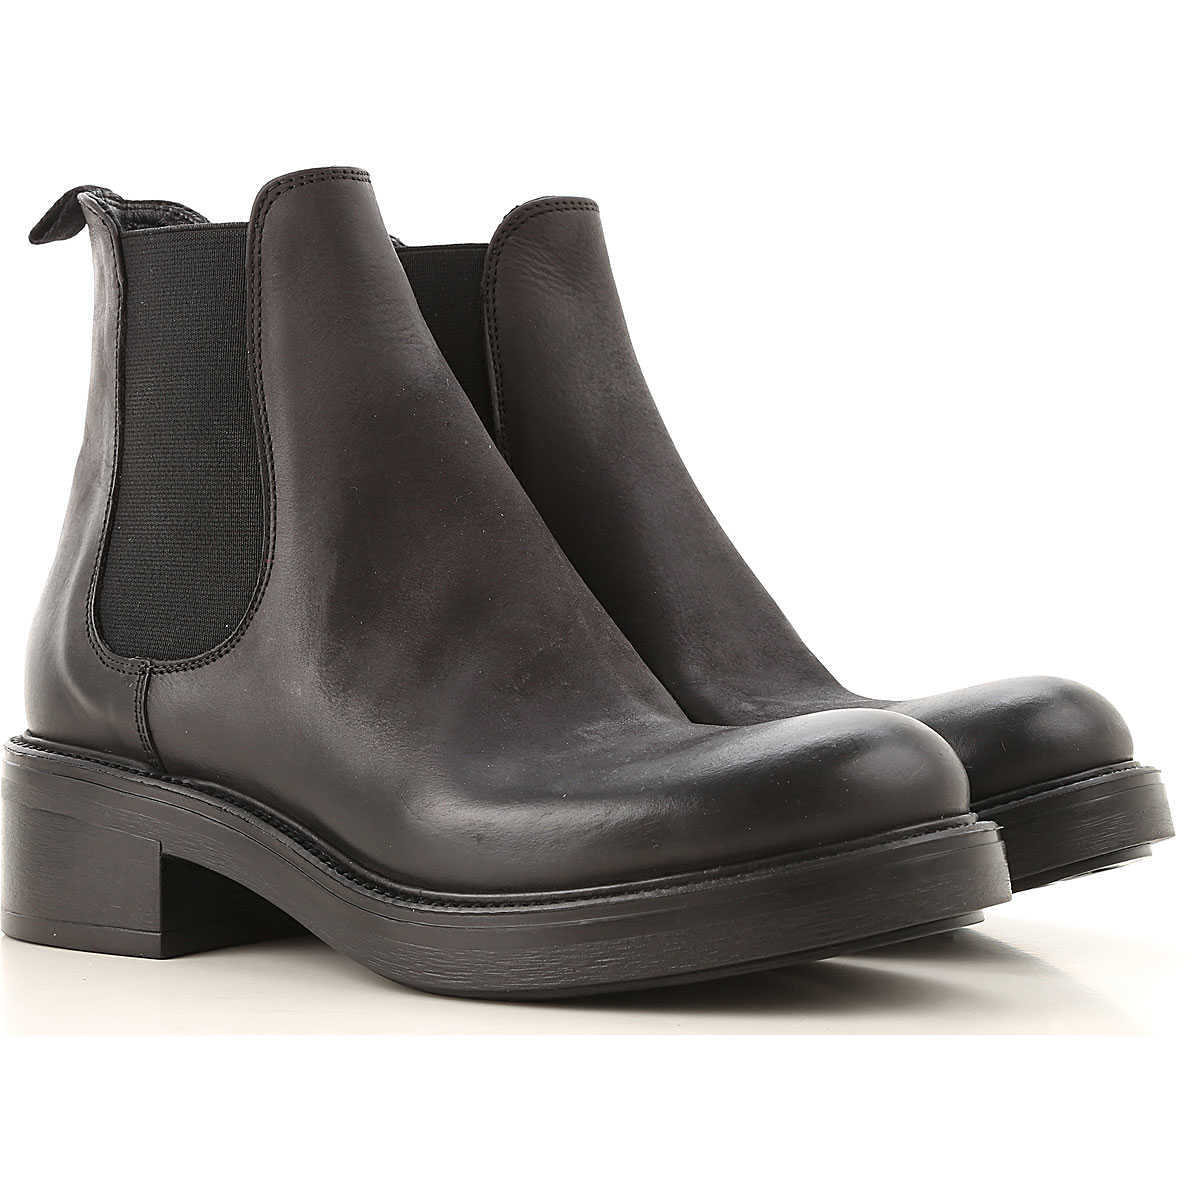 Strategia Chelsea Boots for Women Black DK - GOOFASH - Womens BOOTS